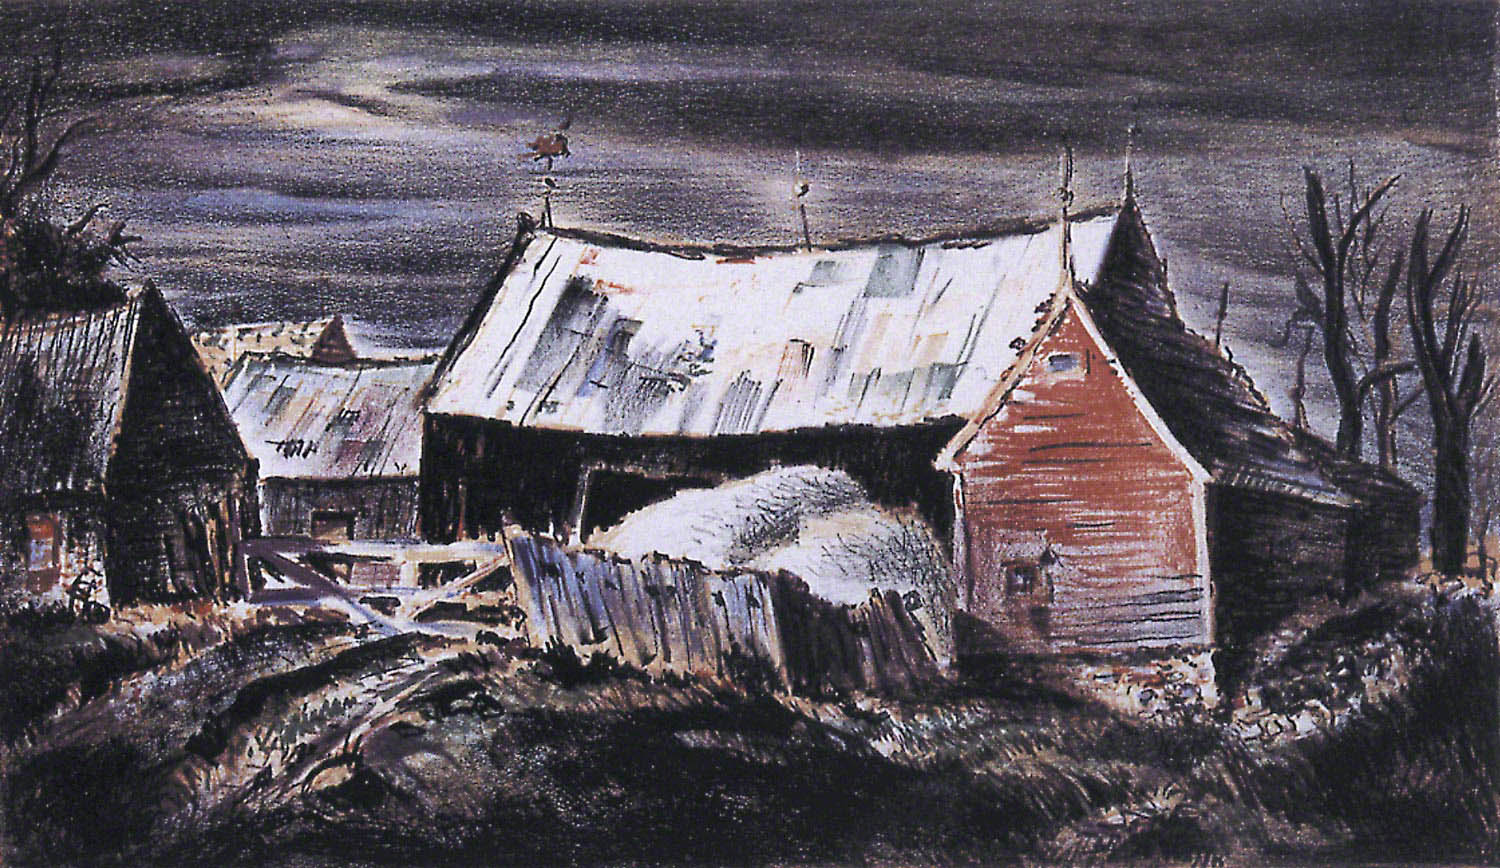 Barn with White Roof by John C. Menihan